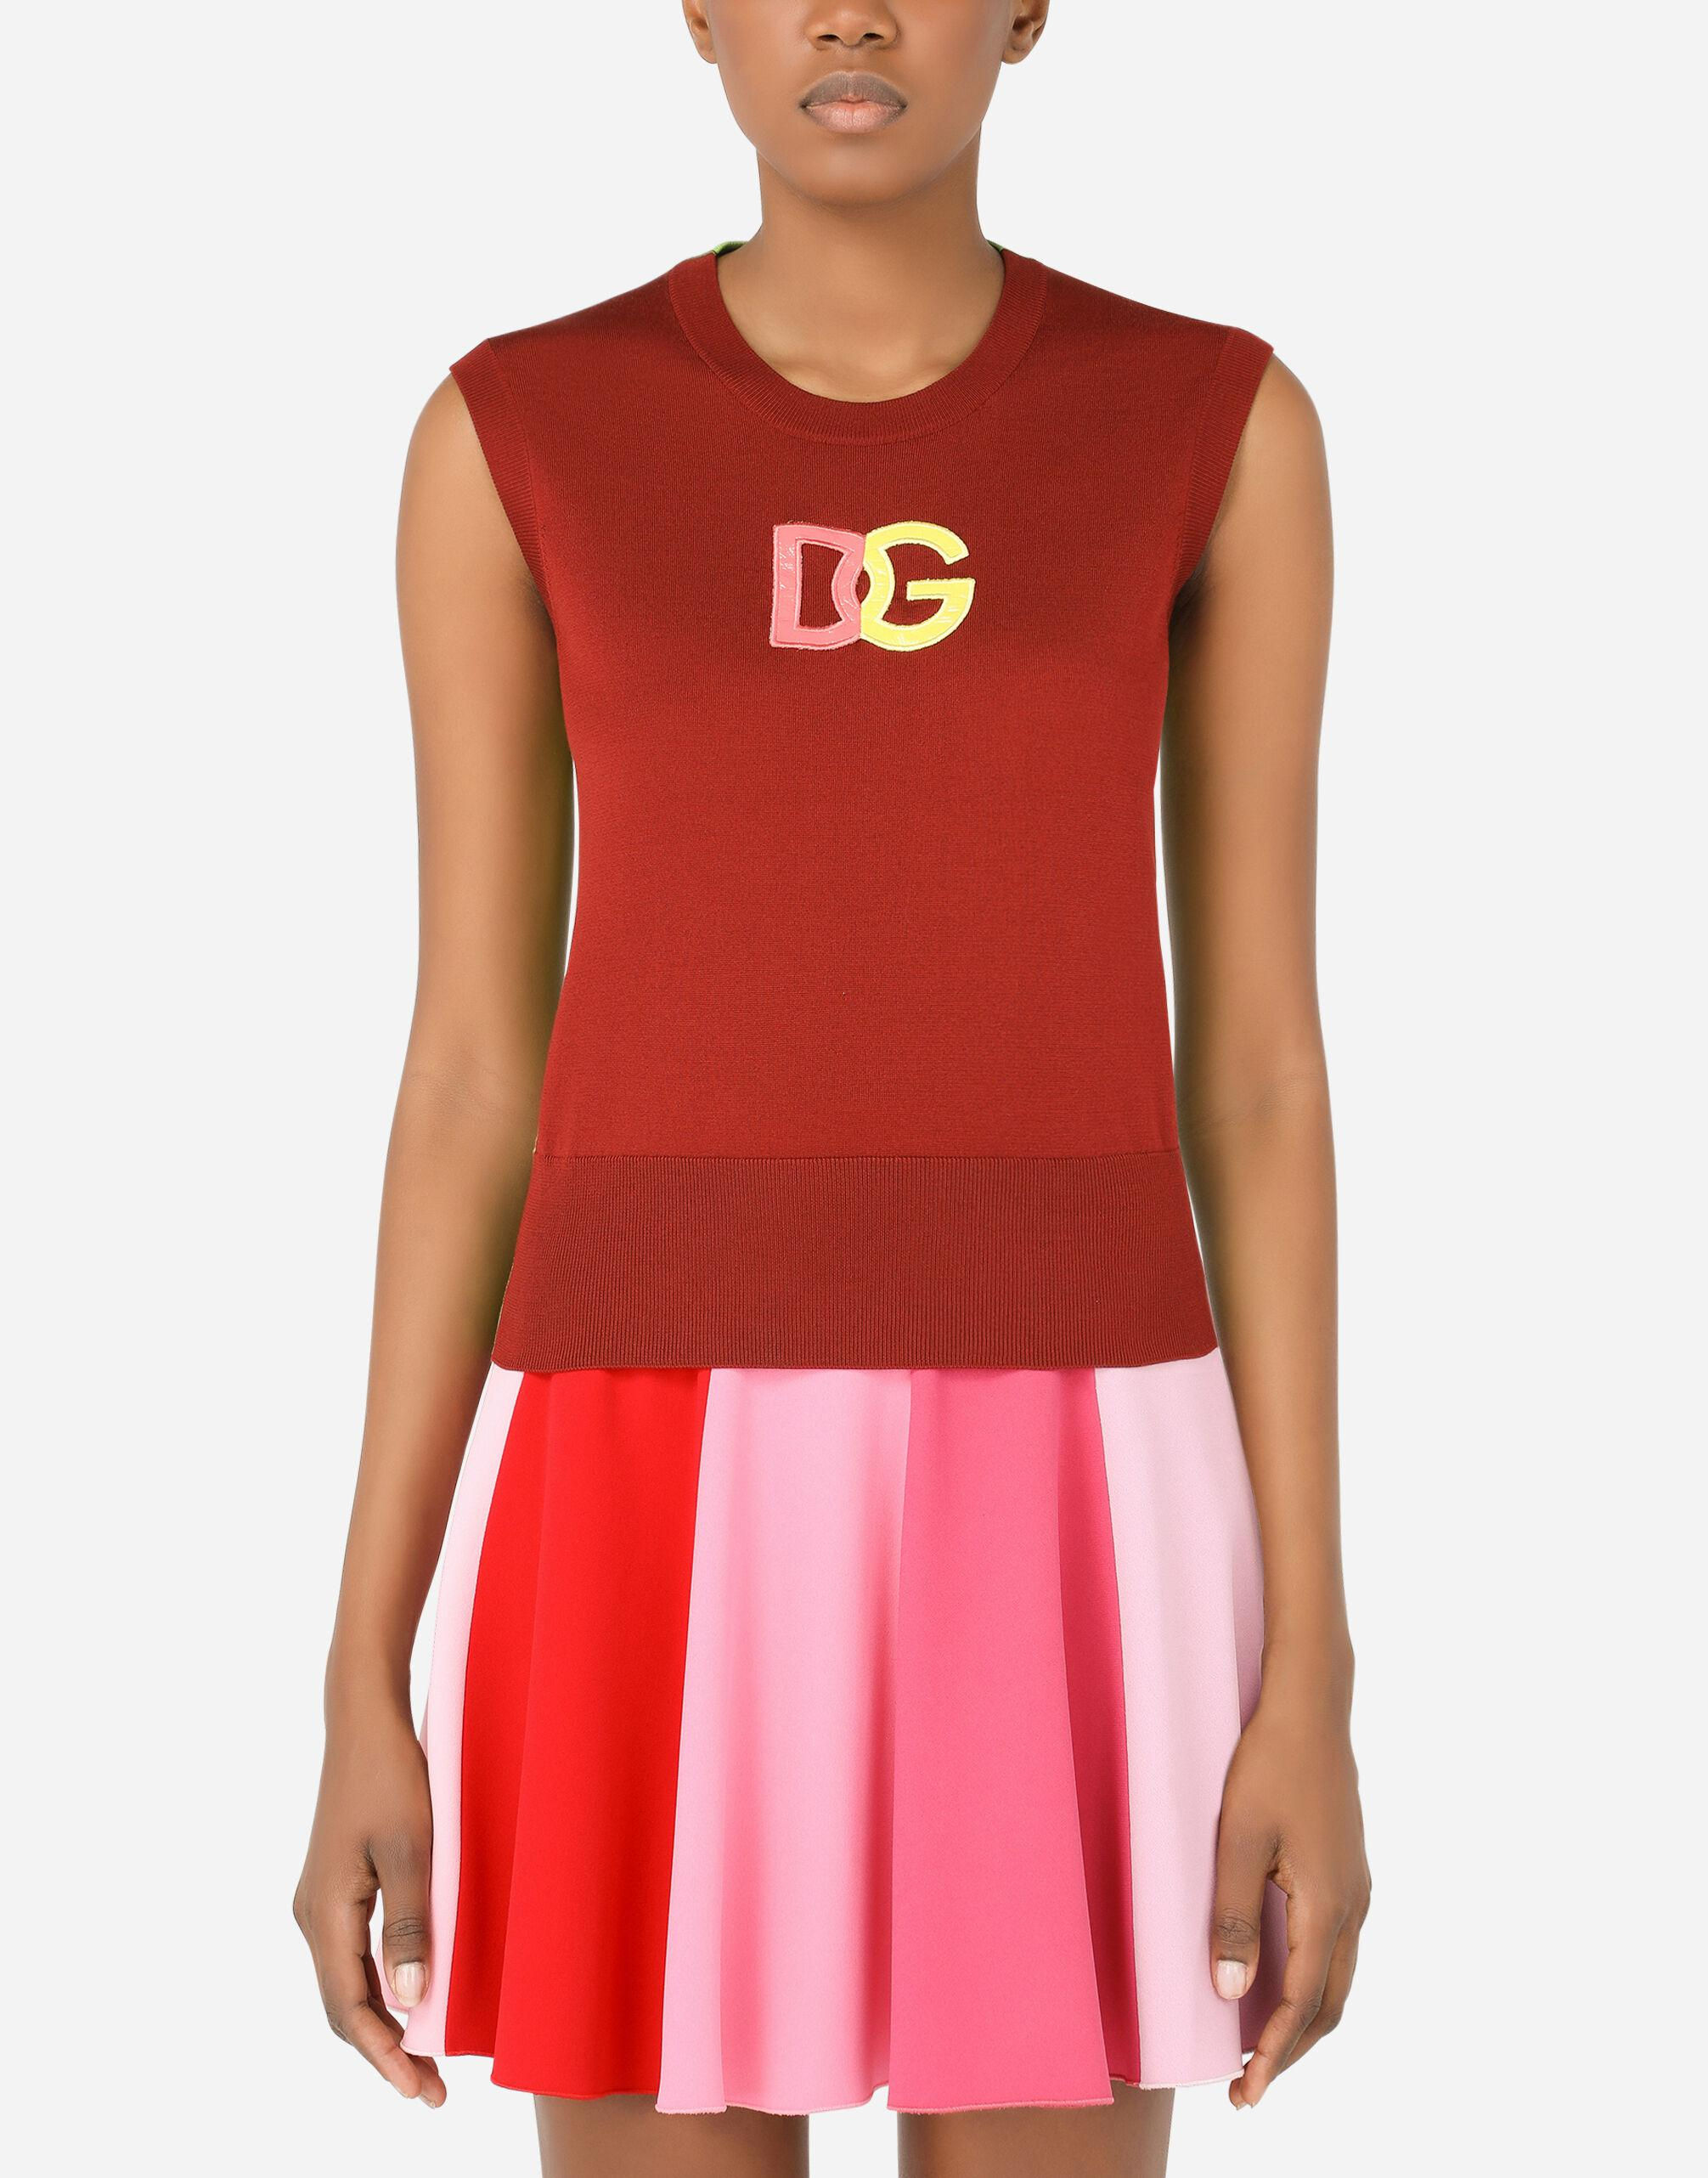 Sleeveless multi-colored silk sweater with patent leather DG patch